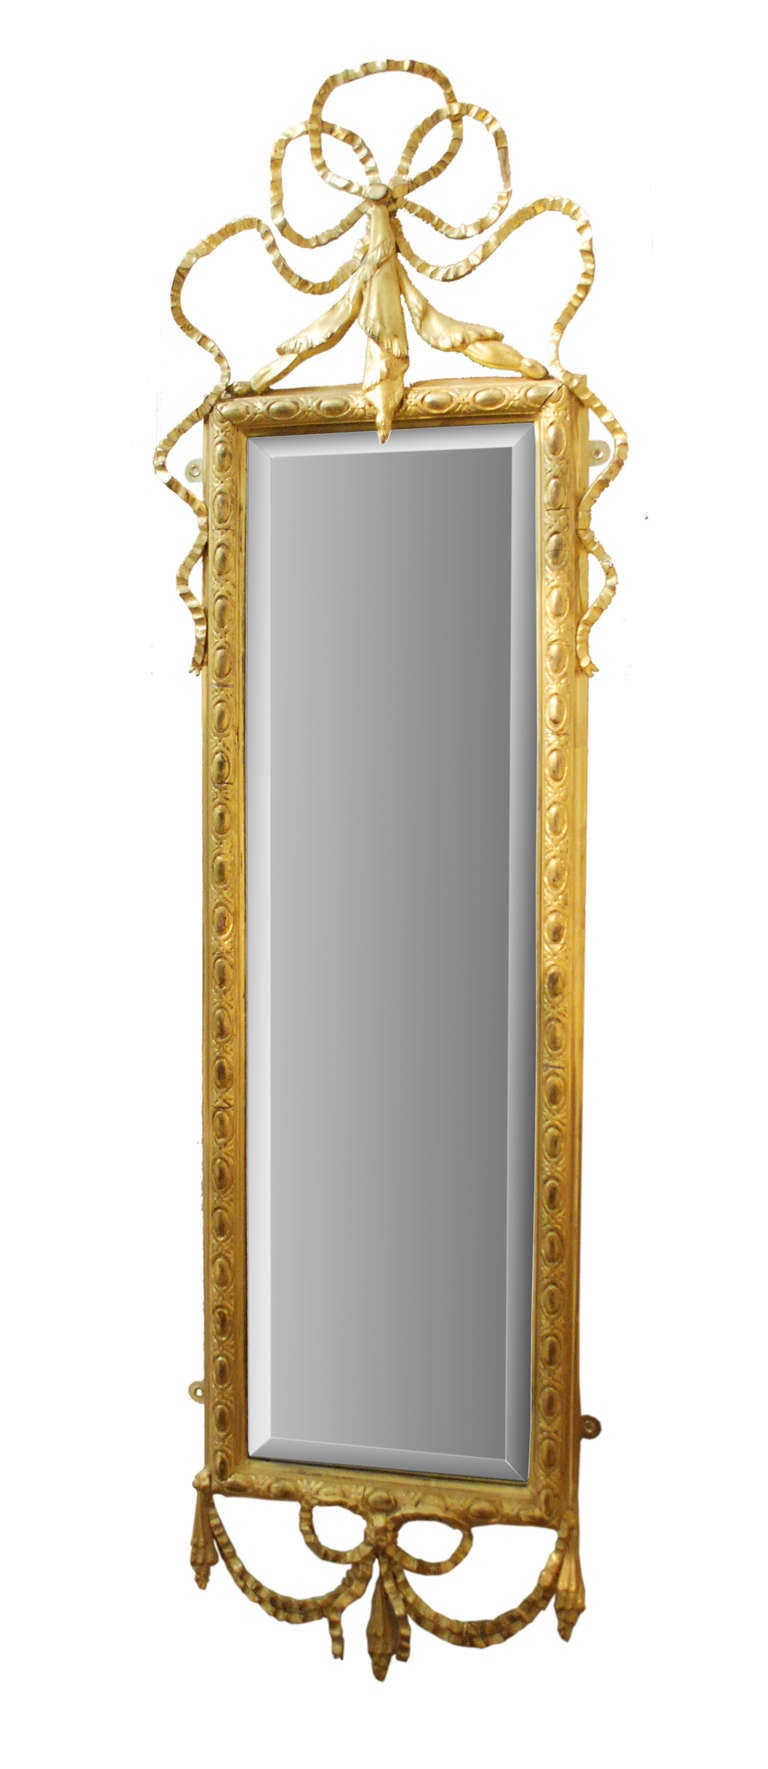 20th century english tall gold mirrors for sale at 1stdibs for Tall mirrors for sale